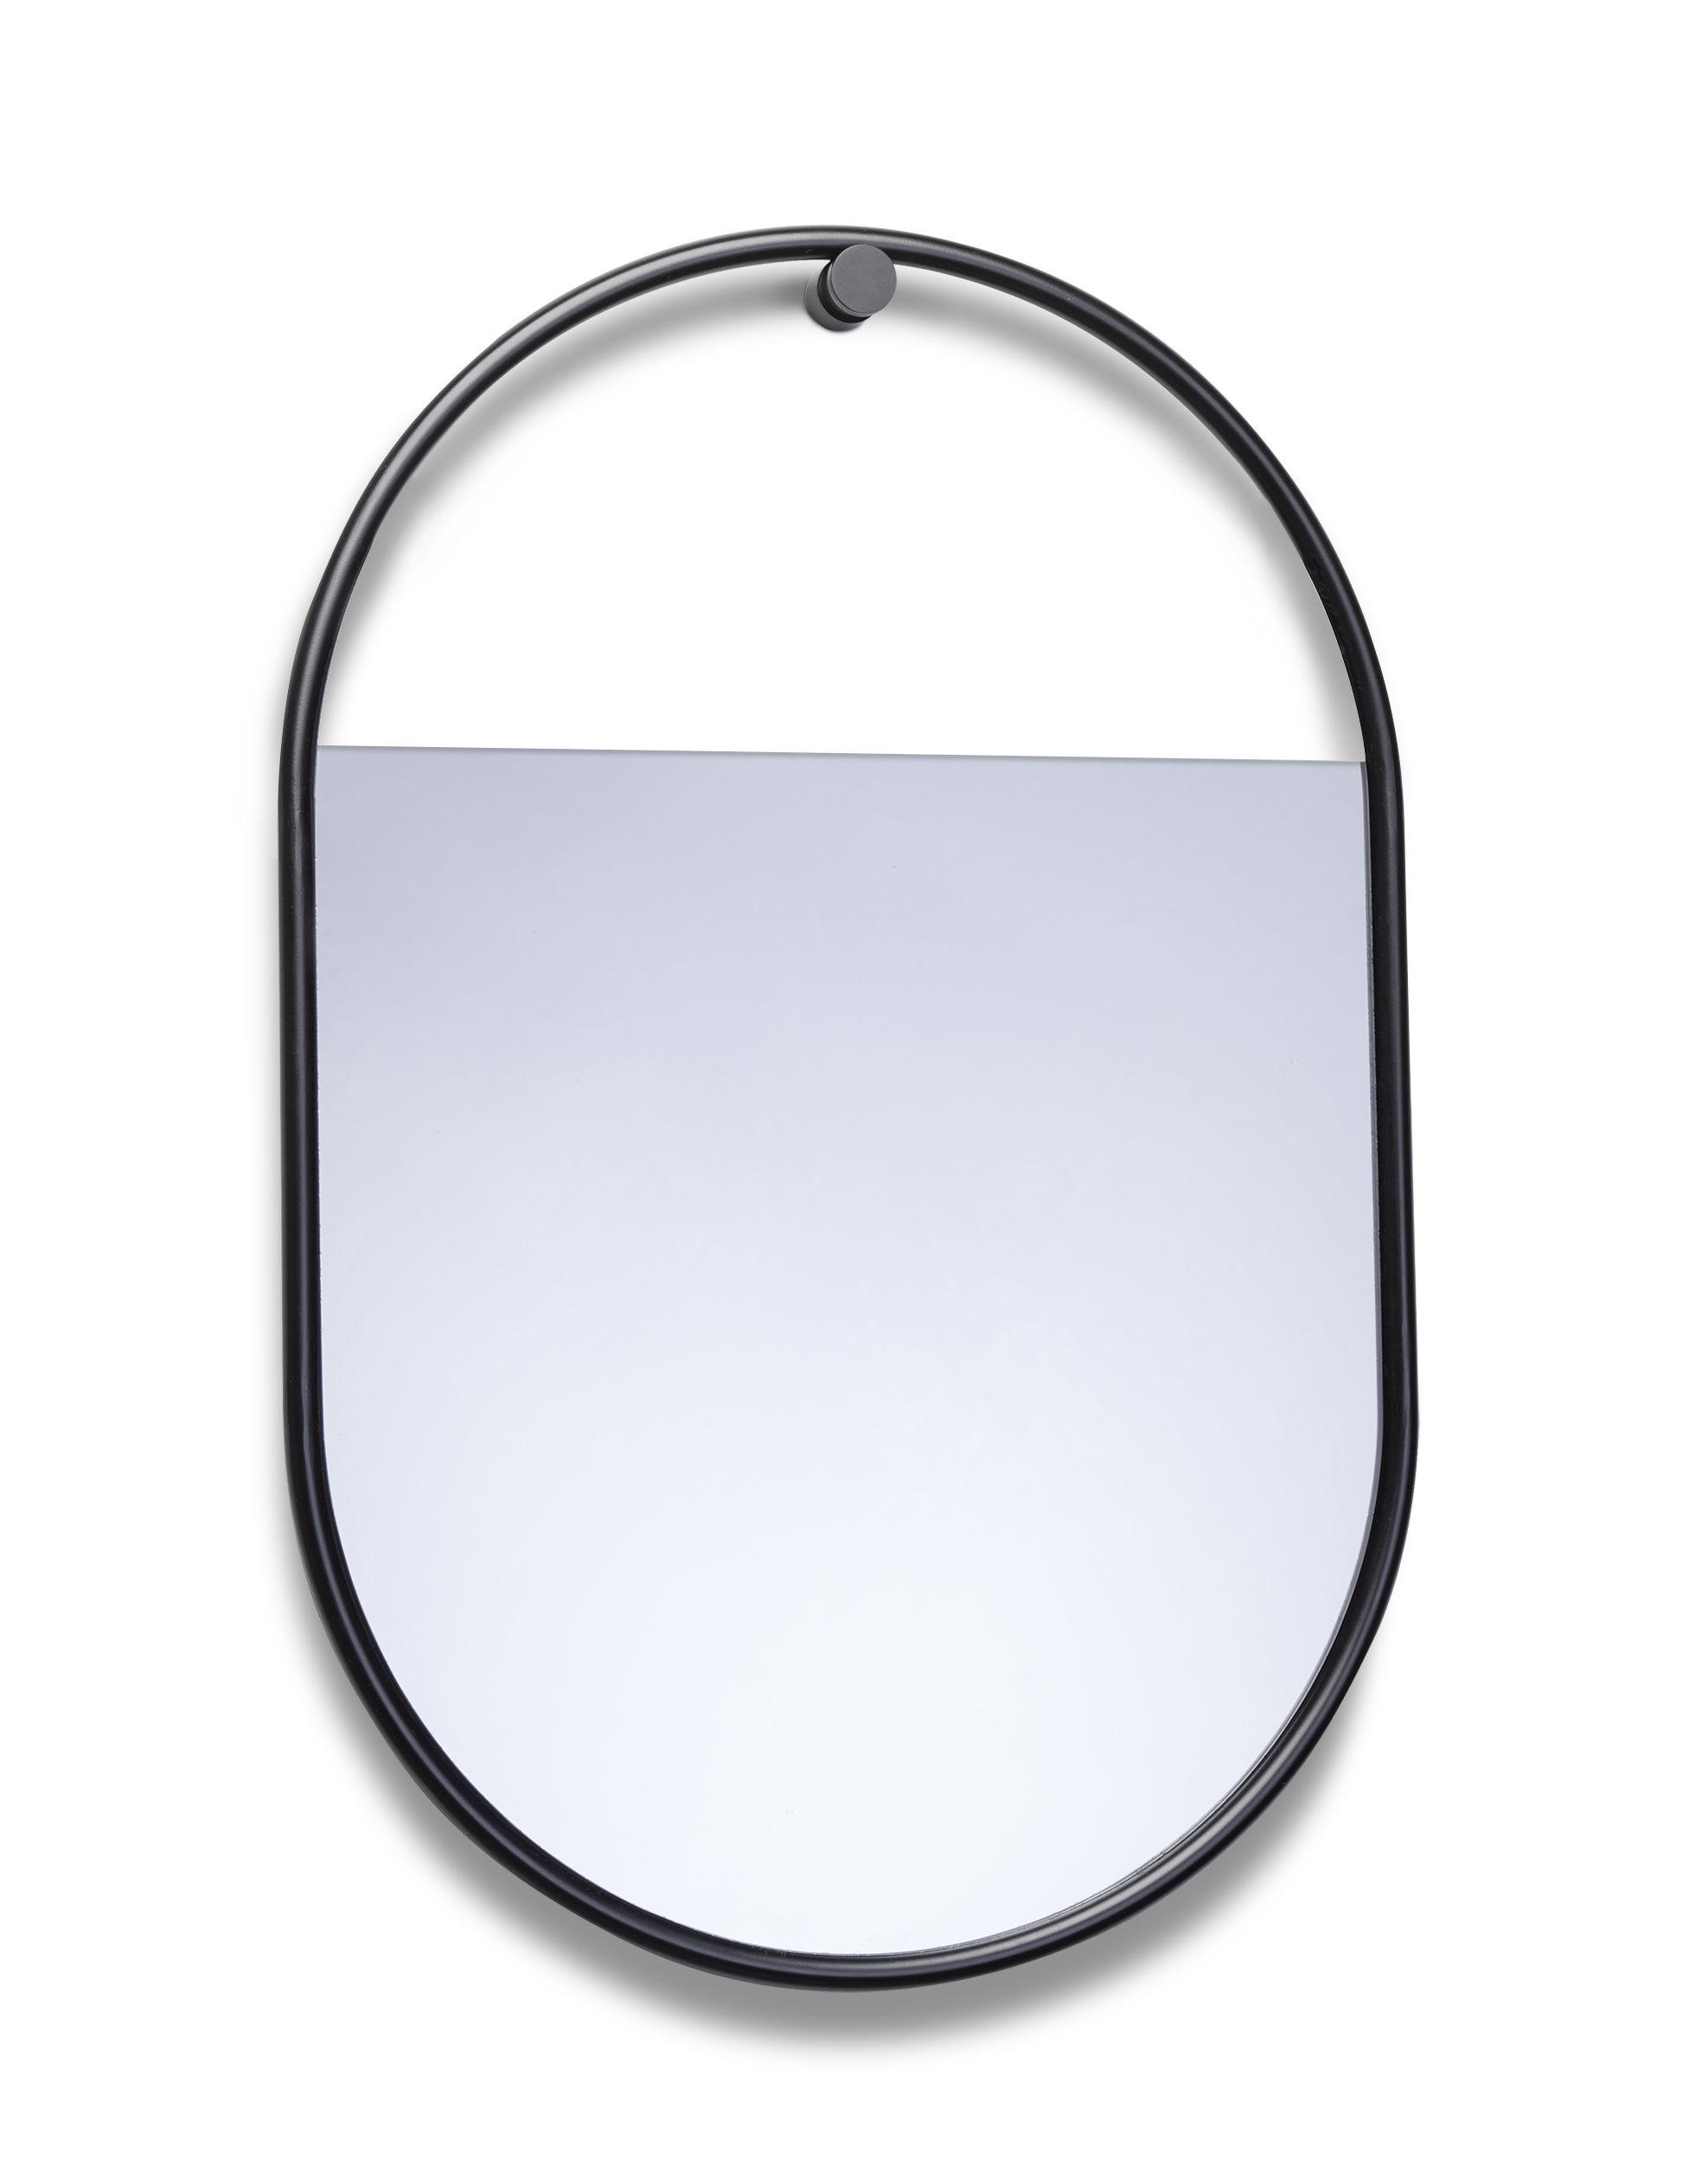 Decoration - Mirrors - Peek Small Wall mirror - / Oval - 40 x 60 cm by Northern  - Oval / Black - Lacquered steel, Tinted glass